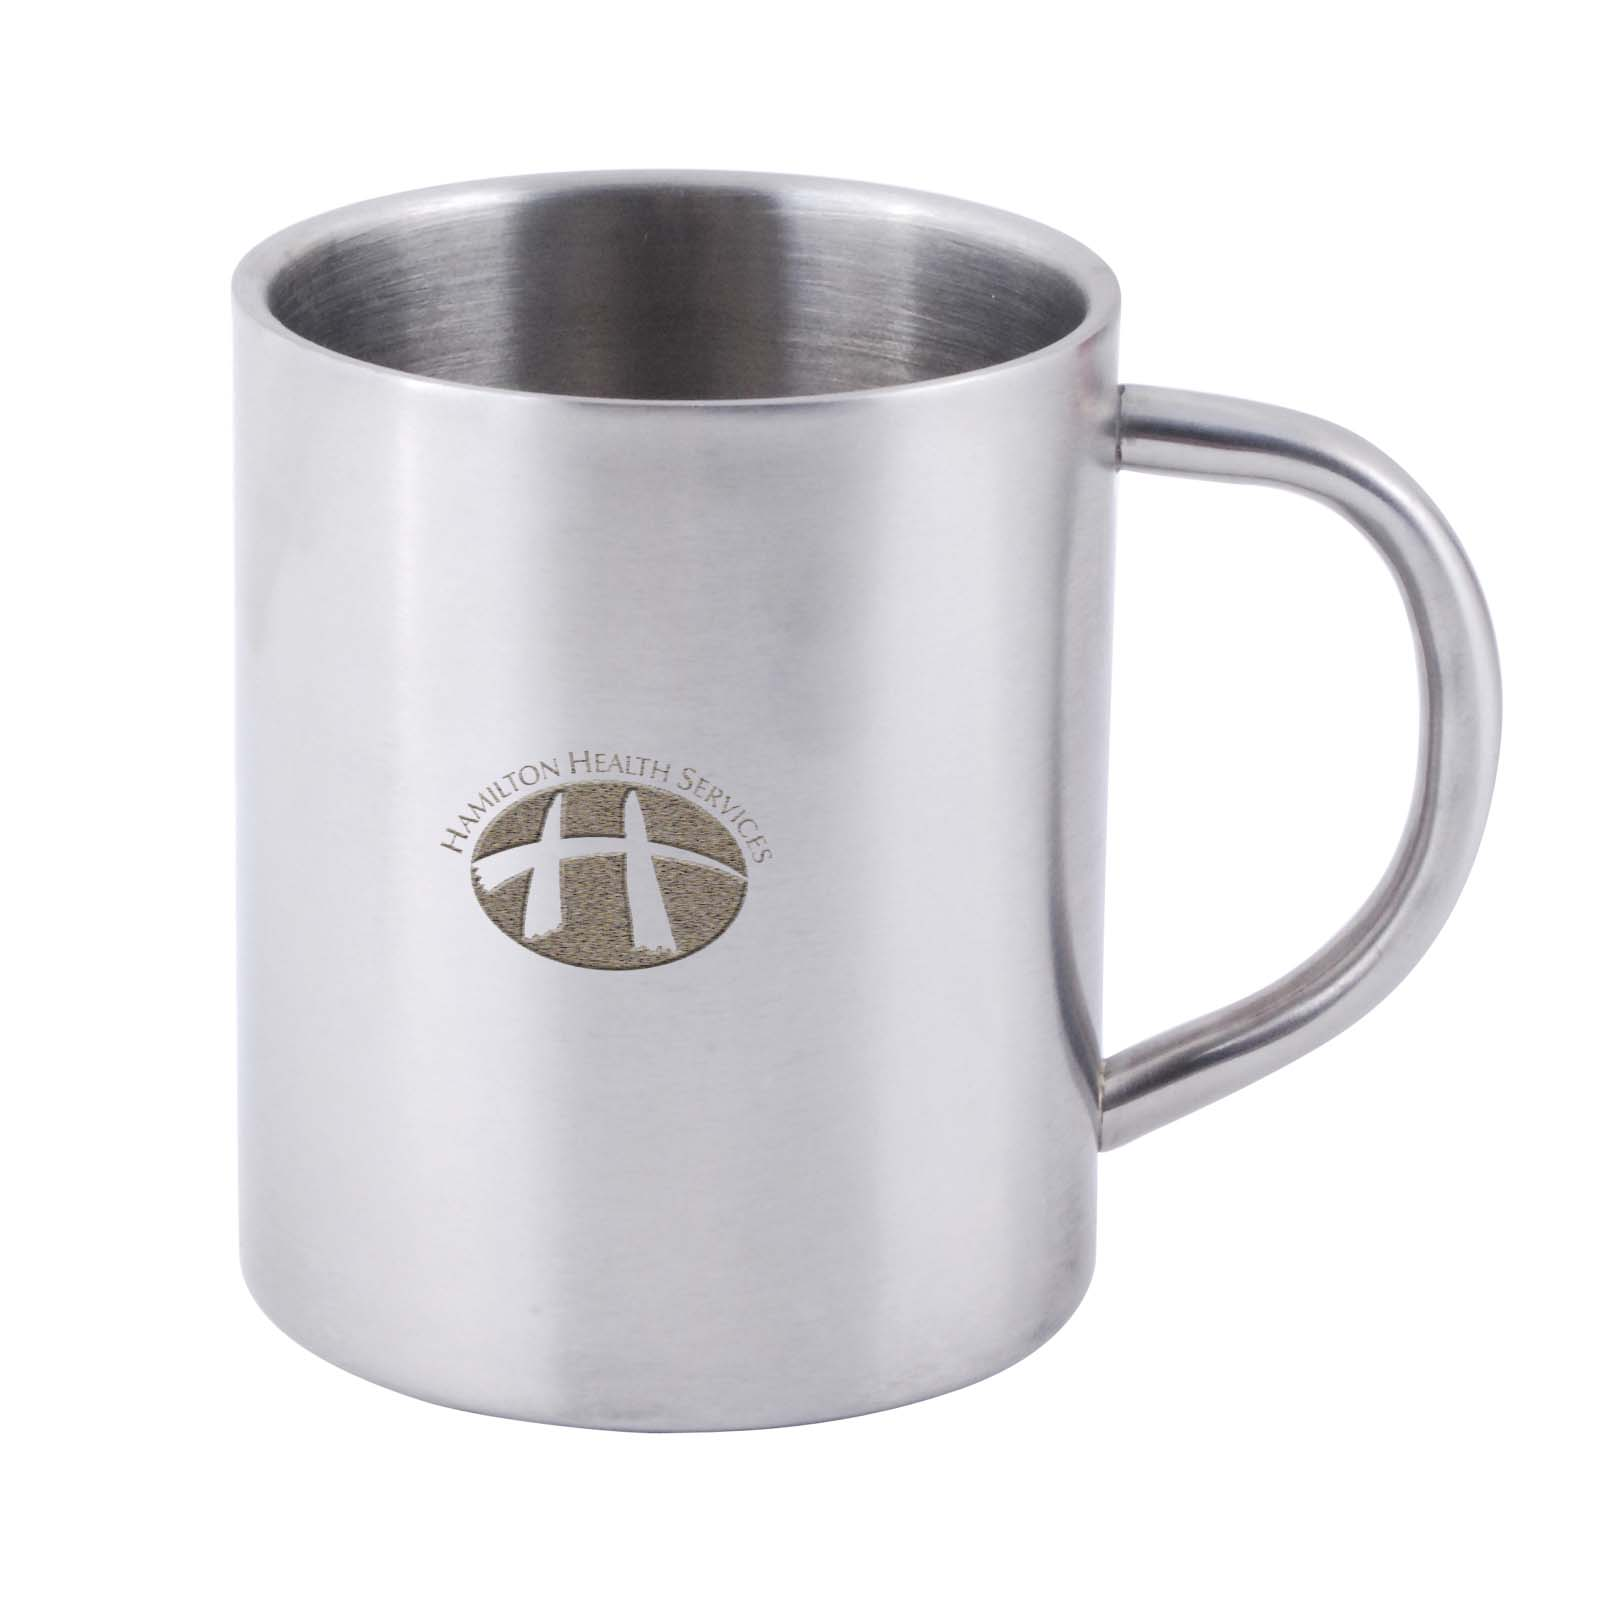 Stainless Steel Double Wall Barrel Mug - Includes laser engraving logo